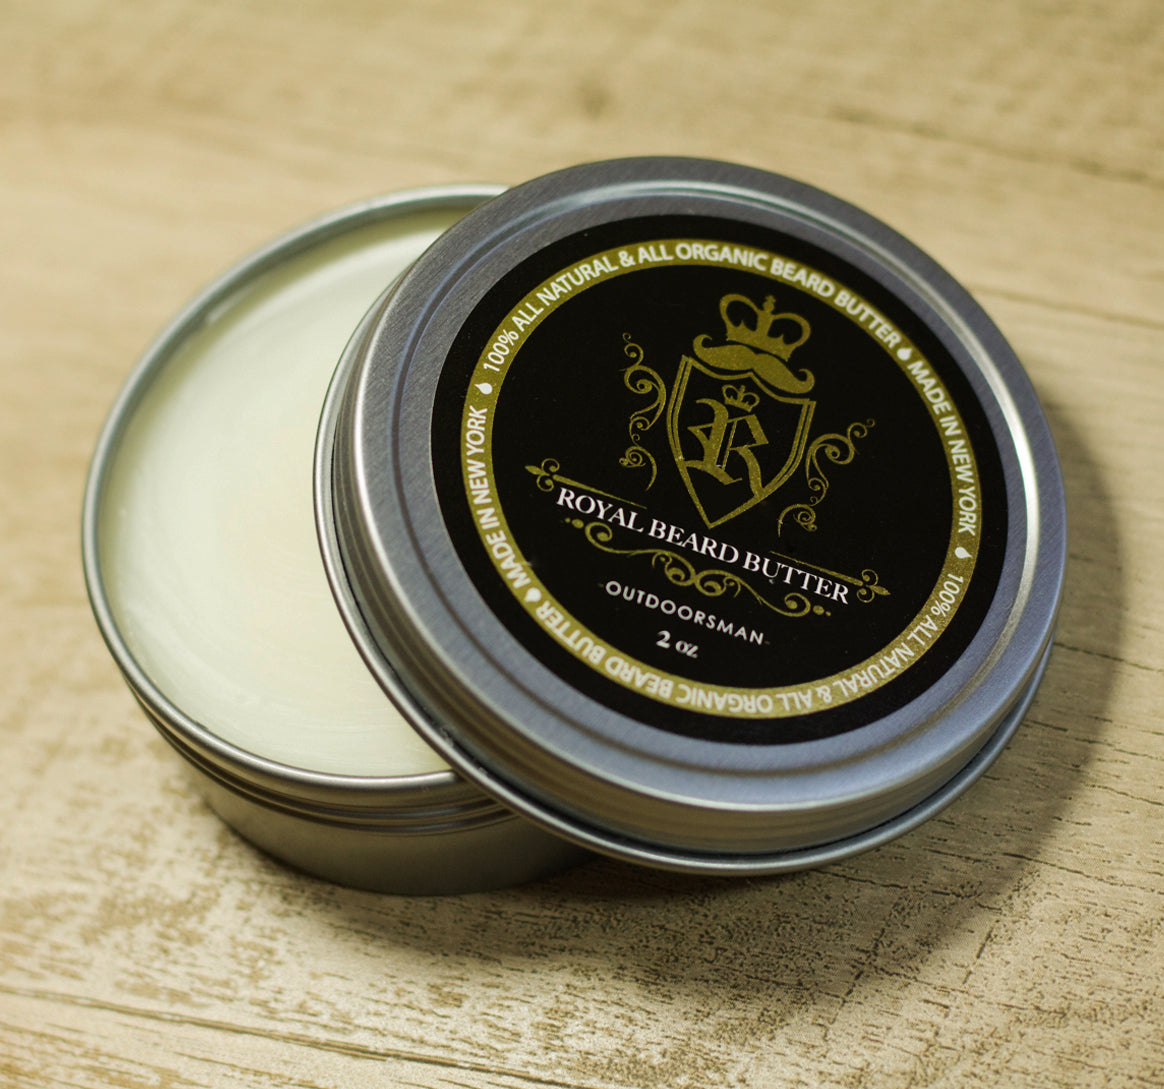 Royal Beard Butter - Outdoorsman Scent